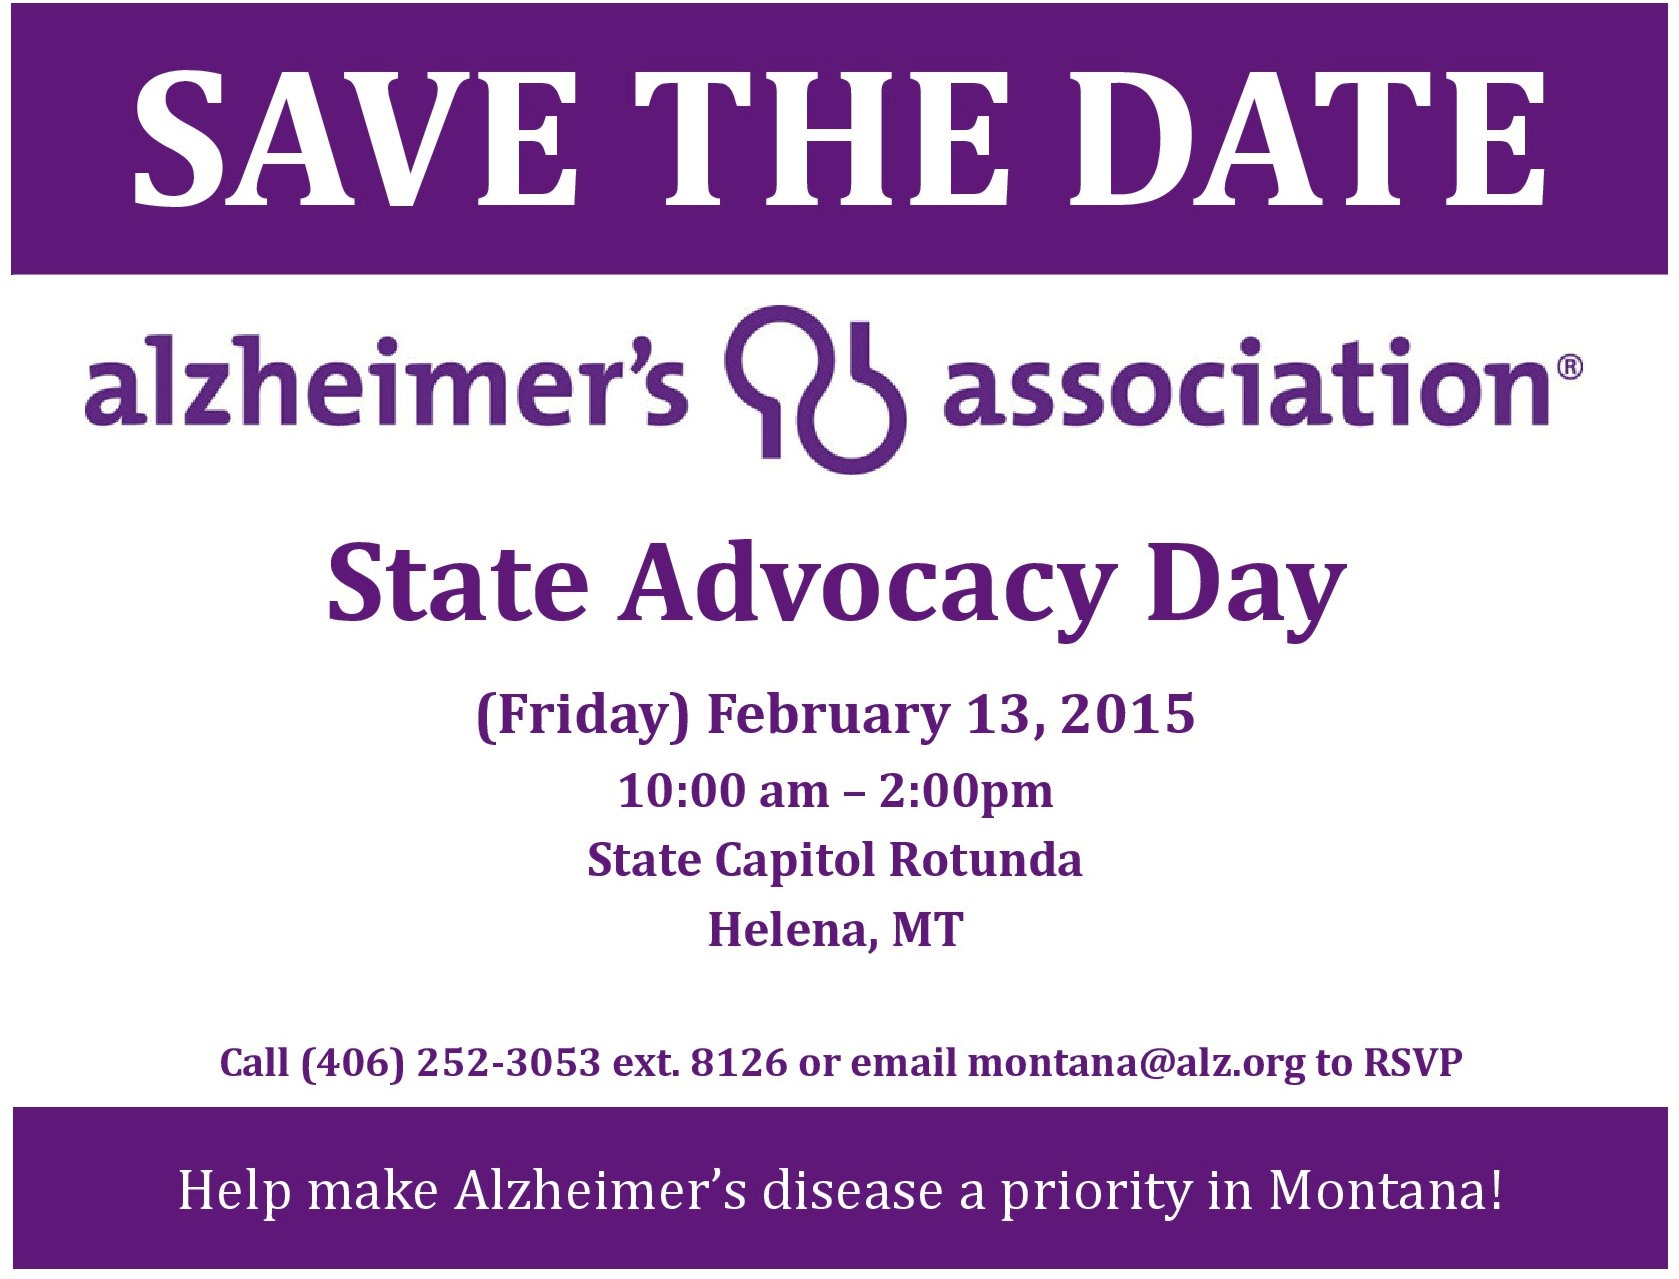 State Advocacy Day - Friday, February 13, 2015